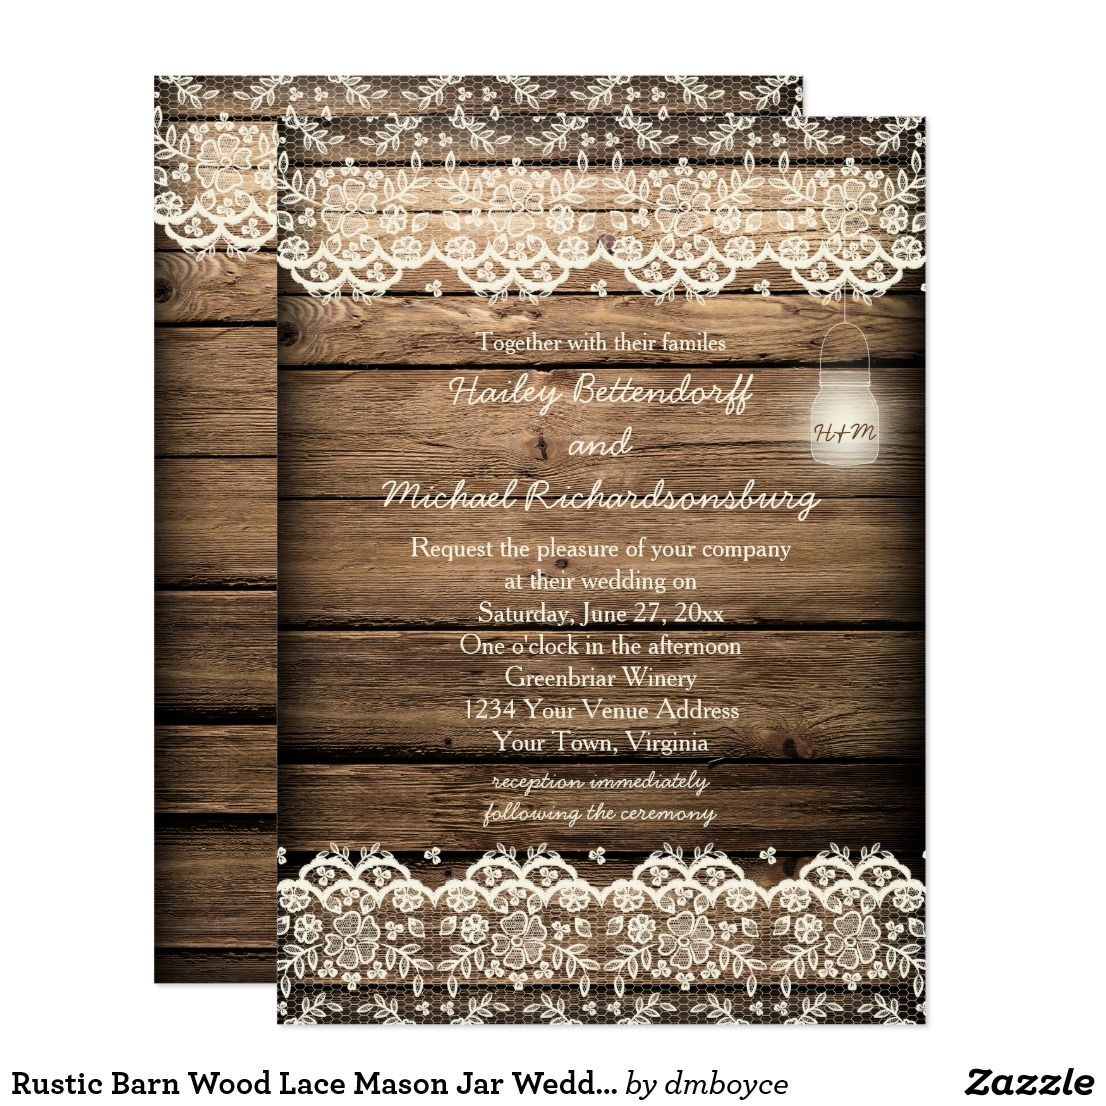 Rustic Barn Wood Lace Mason Jar Wedding Card This Invitation Has A Single